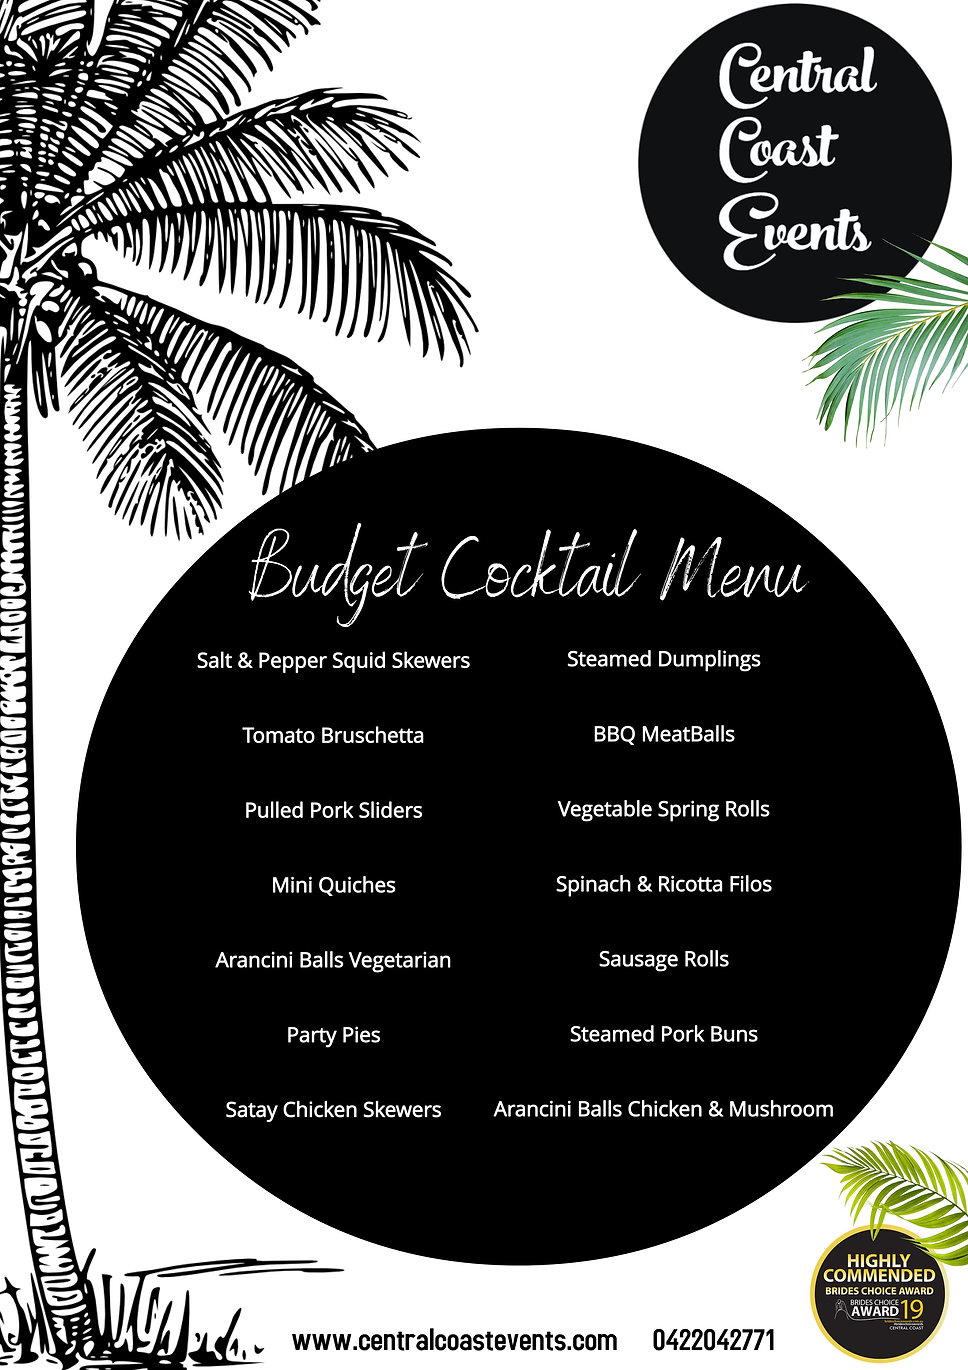 Budget Cocktail Menu.jpg